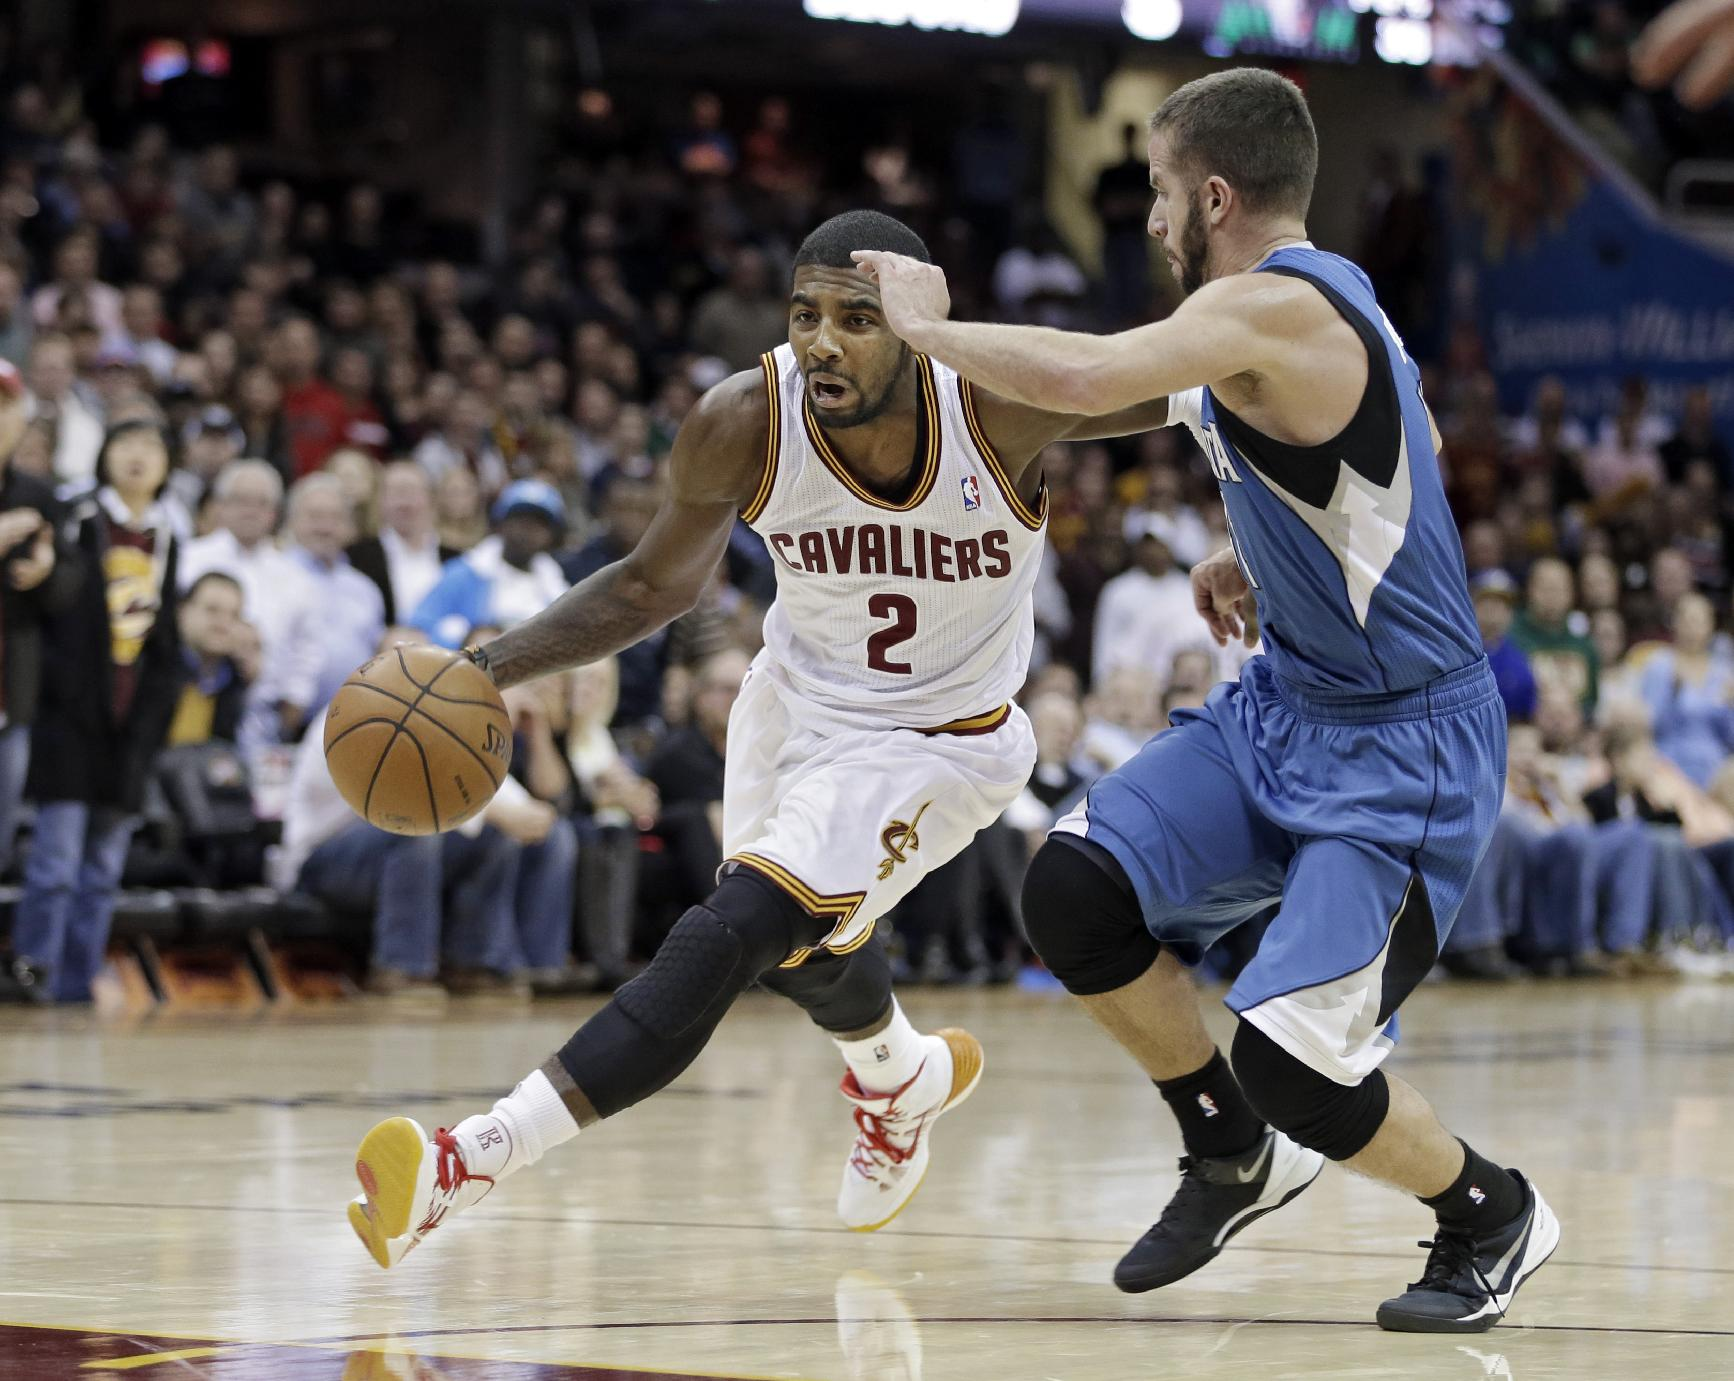 Cleveland Cavaliers' Kyrie Irving (2) drives past Minnesota Timberwolves' J.J. Barea in the fourth quarter of an NBA basketball game Monday, Nov. 4, 2013, in Cleveland. Irving scored 15 points in the Cavaliers' 93-92 win